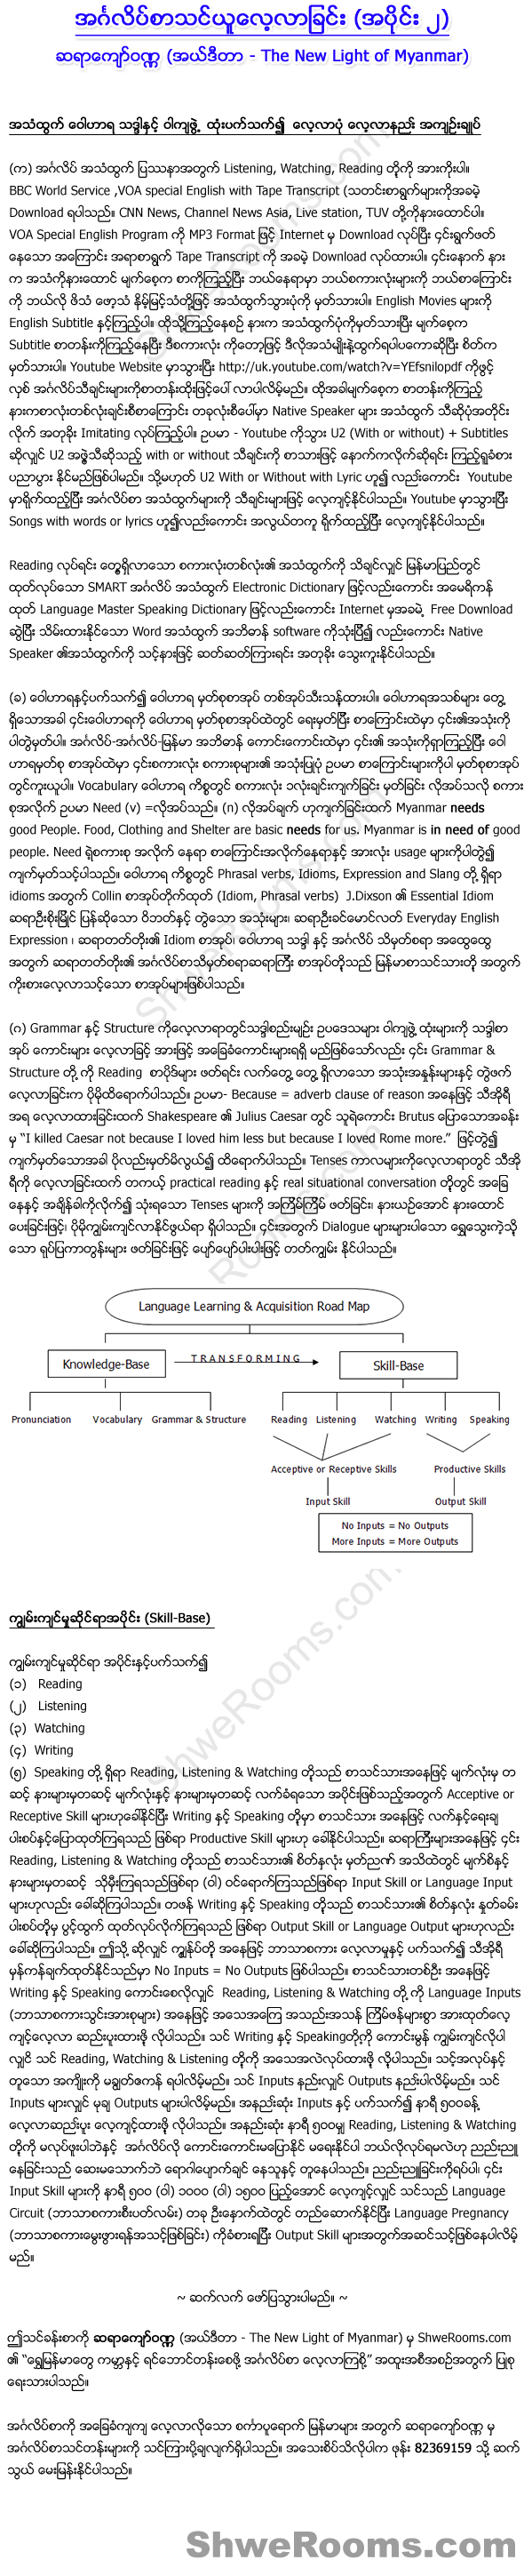 Lesson 2: Learning English (Part 2). In Part 2 of Learning English, Sayar Kyaw Wunna continues to explain the other areas of Language Learning and Acquisition Road Map . He emphasises on Reading, Listening, Watching, Writing and Speaking.